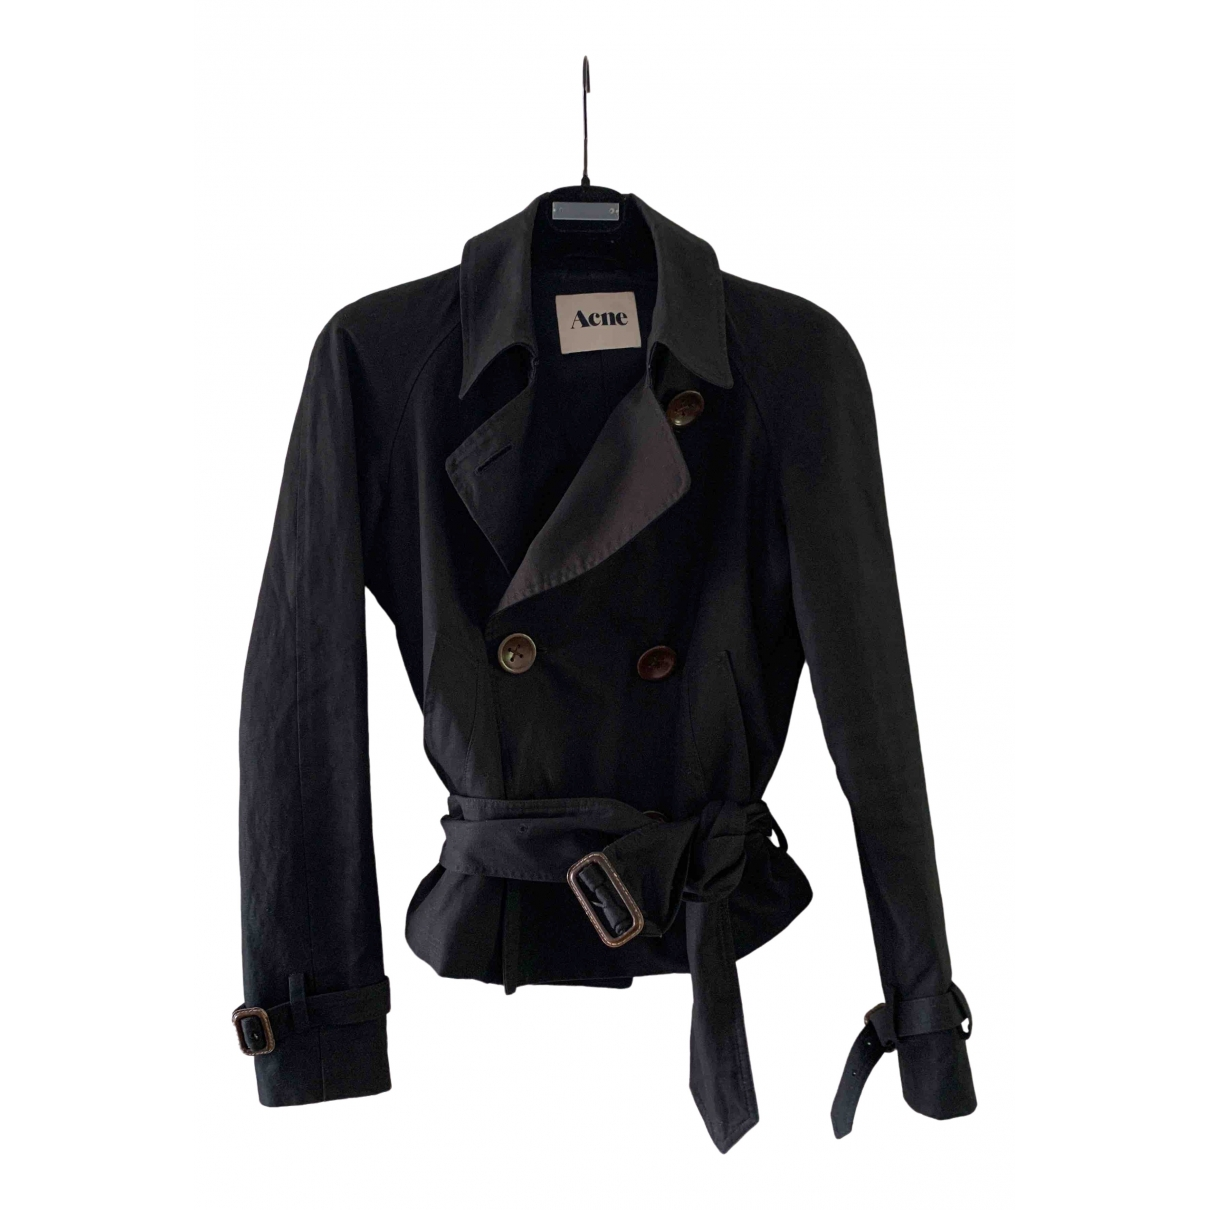 Acne Studios \N Black Cotton jacket for Women 36 FR